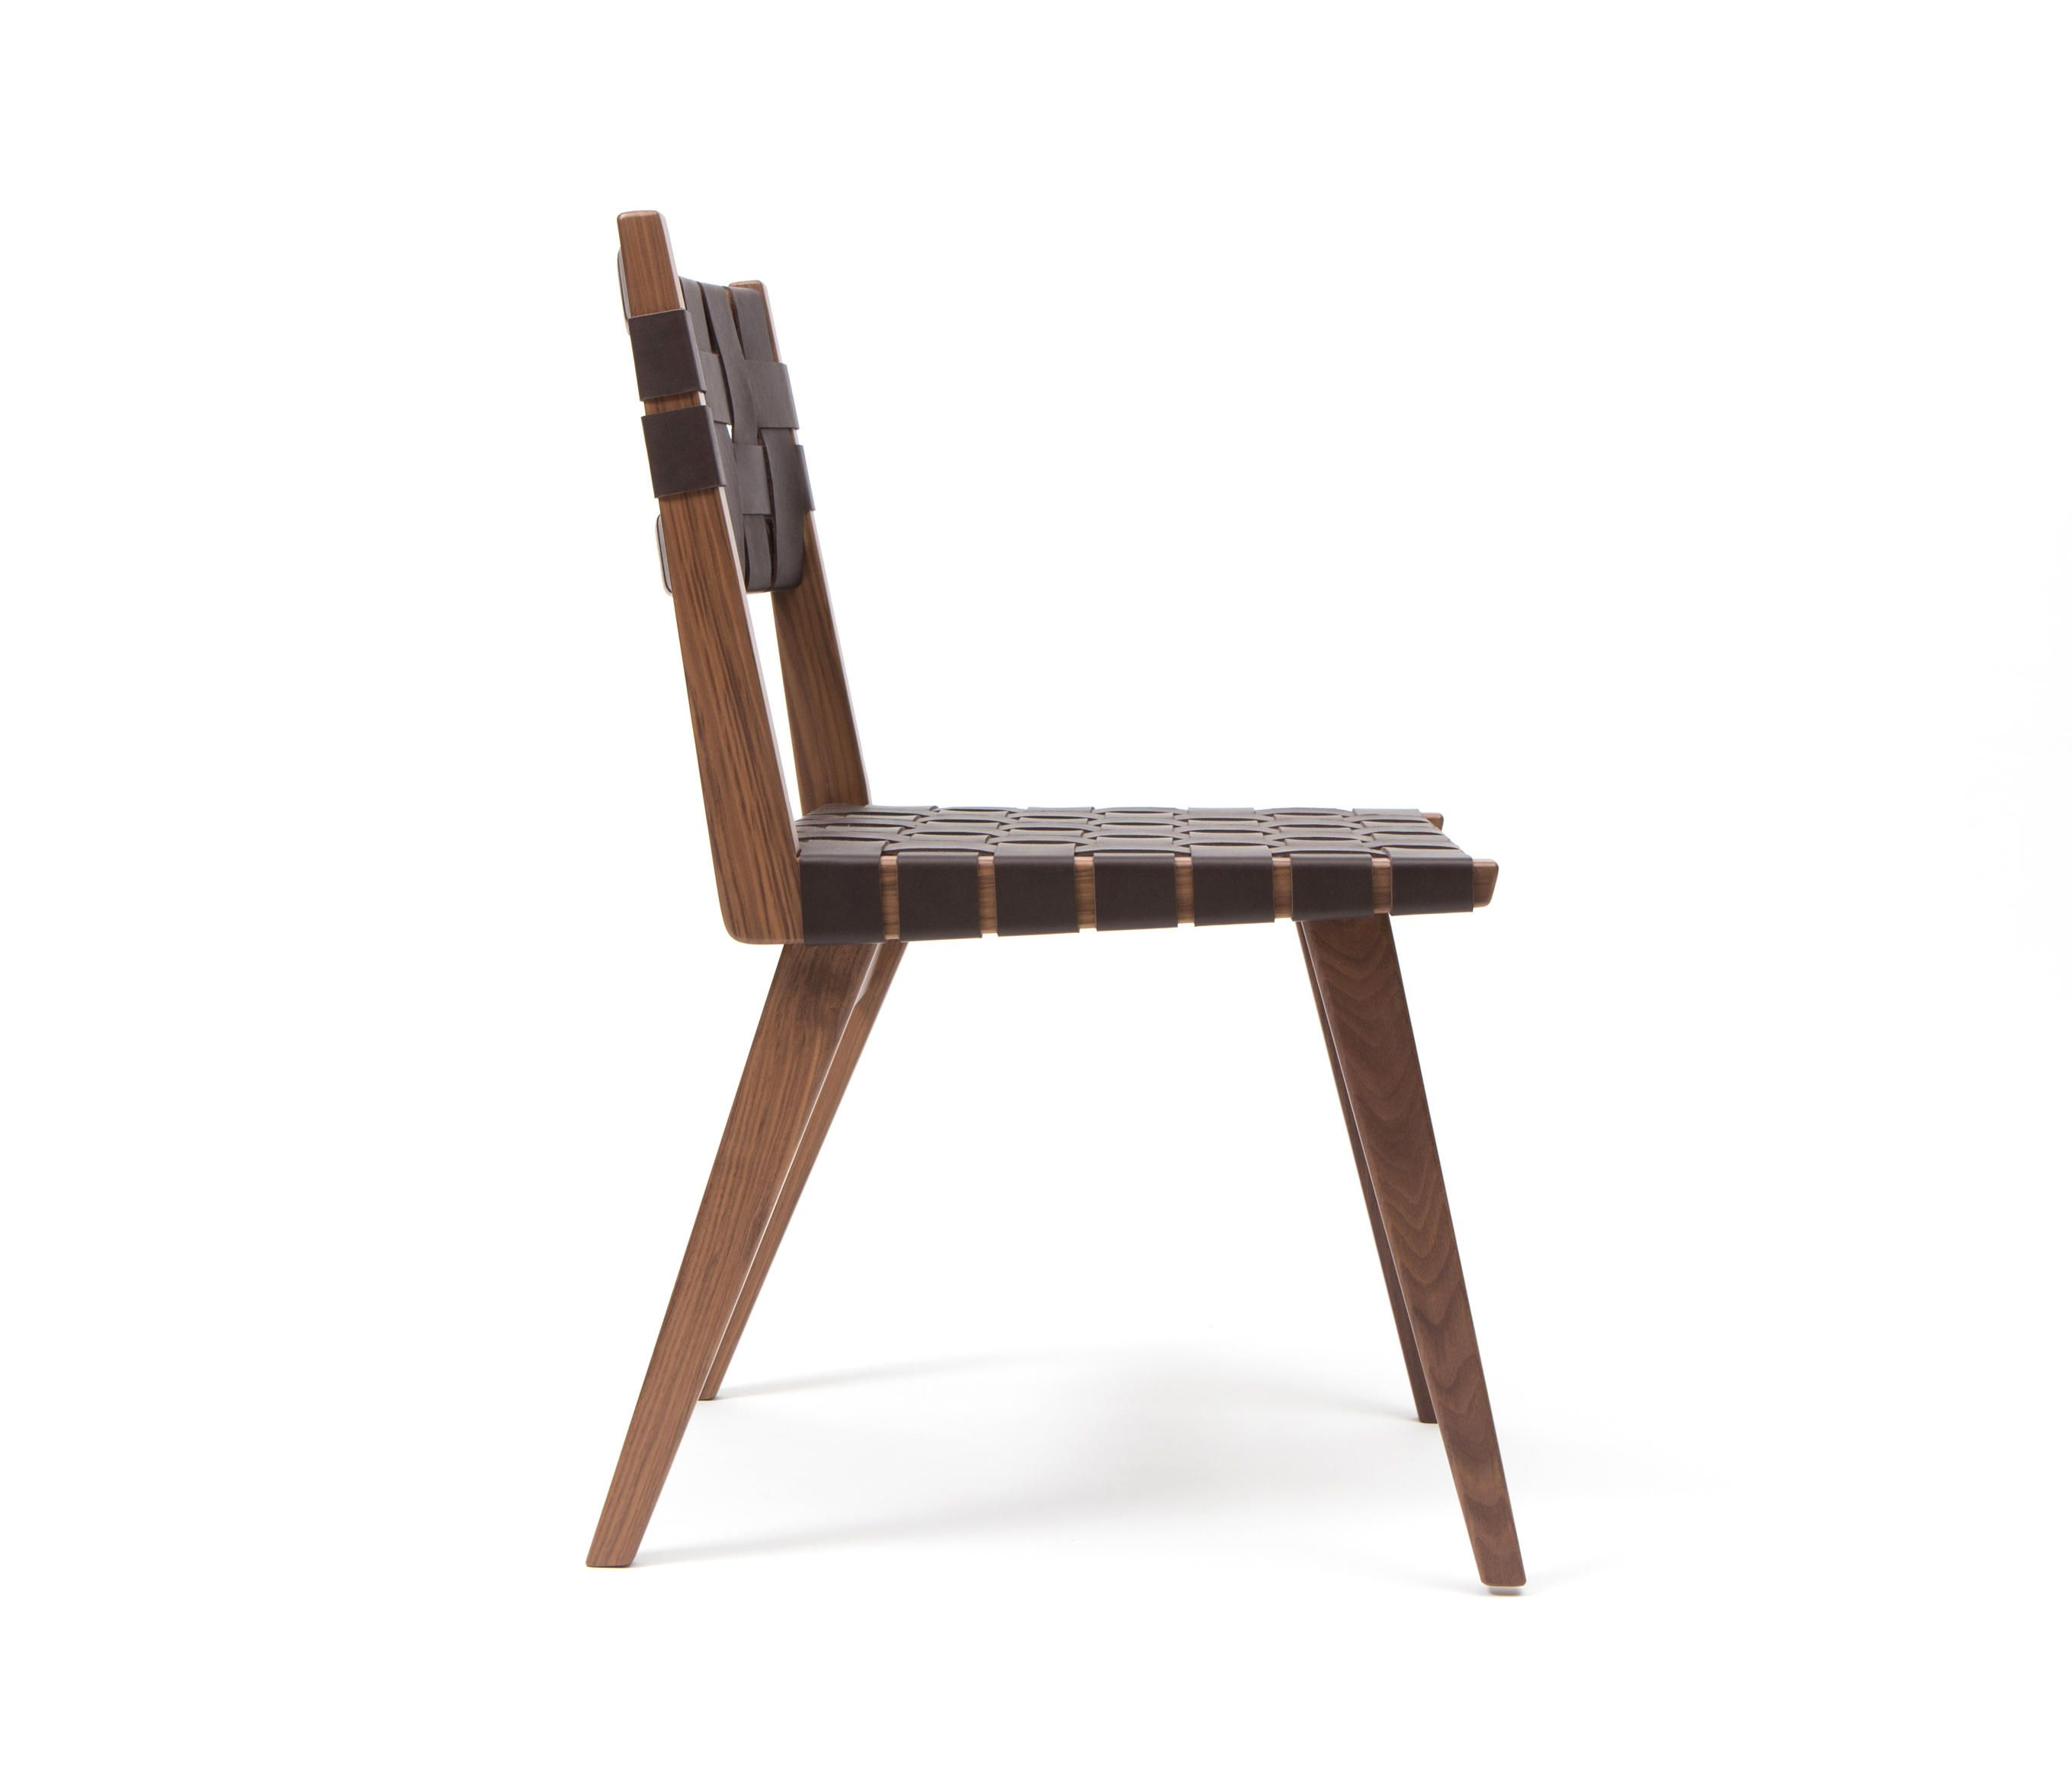 WOVEN LEATHER DINING CHAIR   Designer Restaurant Chairs From Smilow Design  ✓ All Information ✓ High